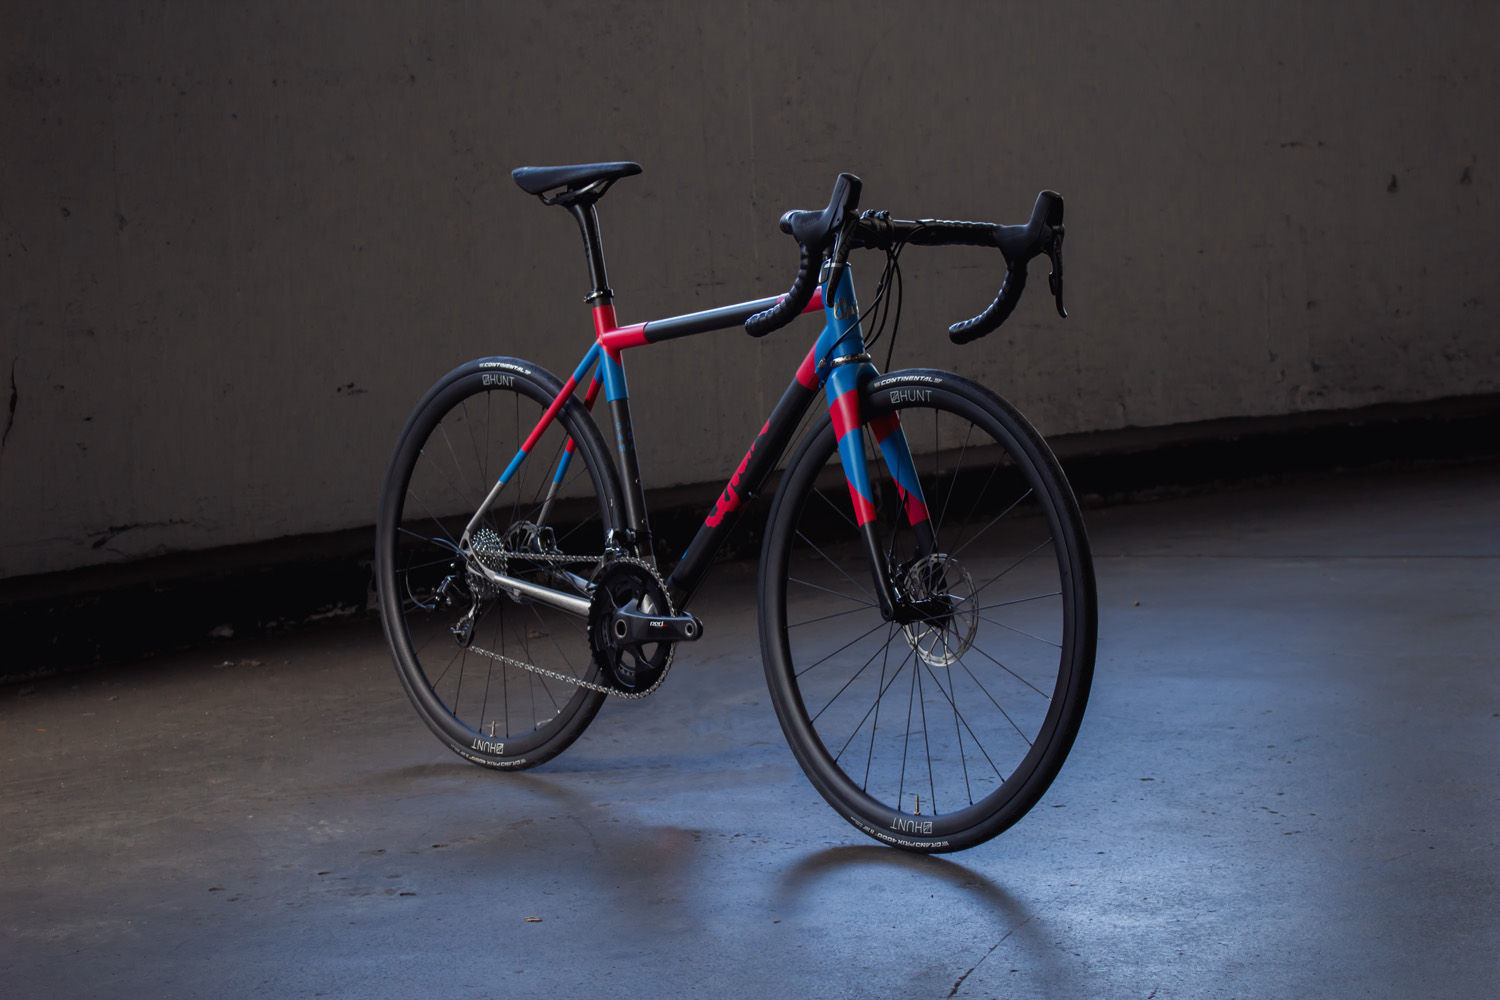 quirk_cycles_stainless_carbon_climber_road_JPEG_0003.jpg